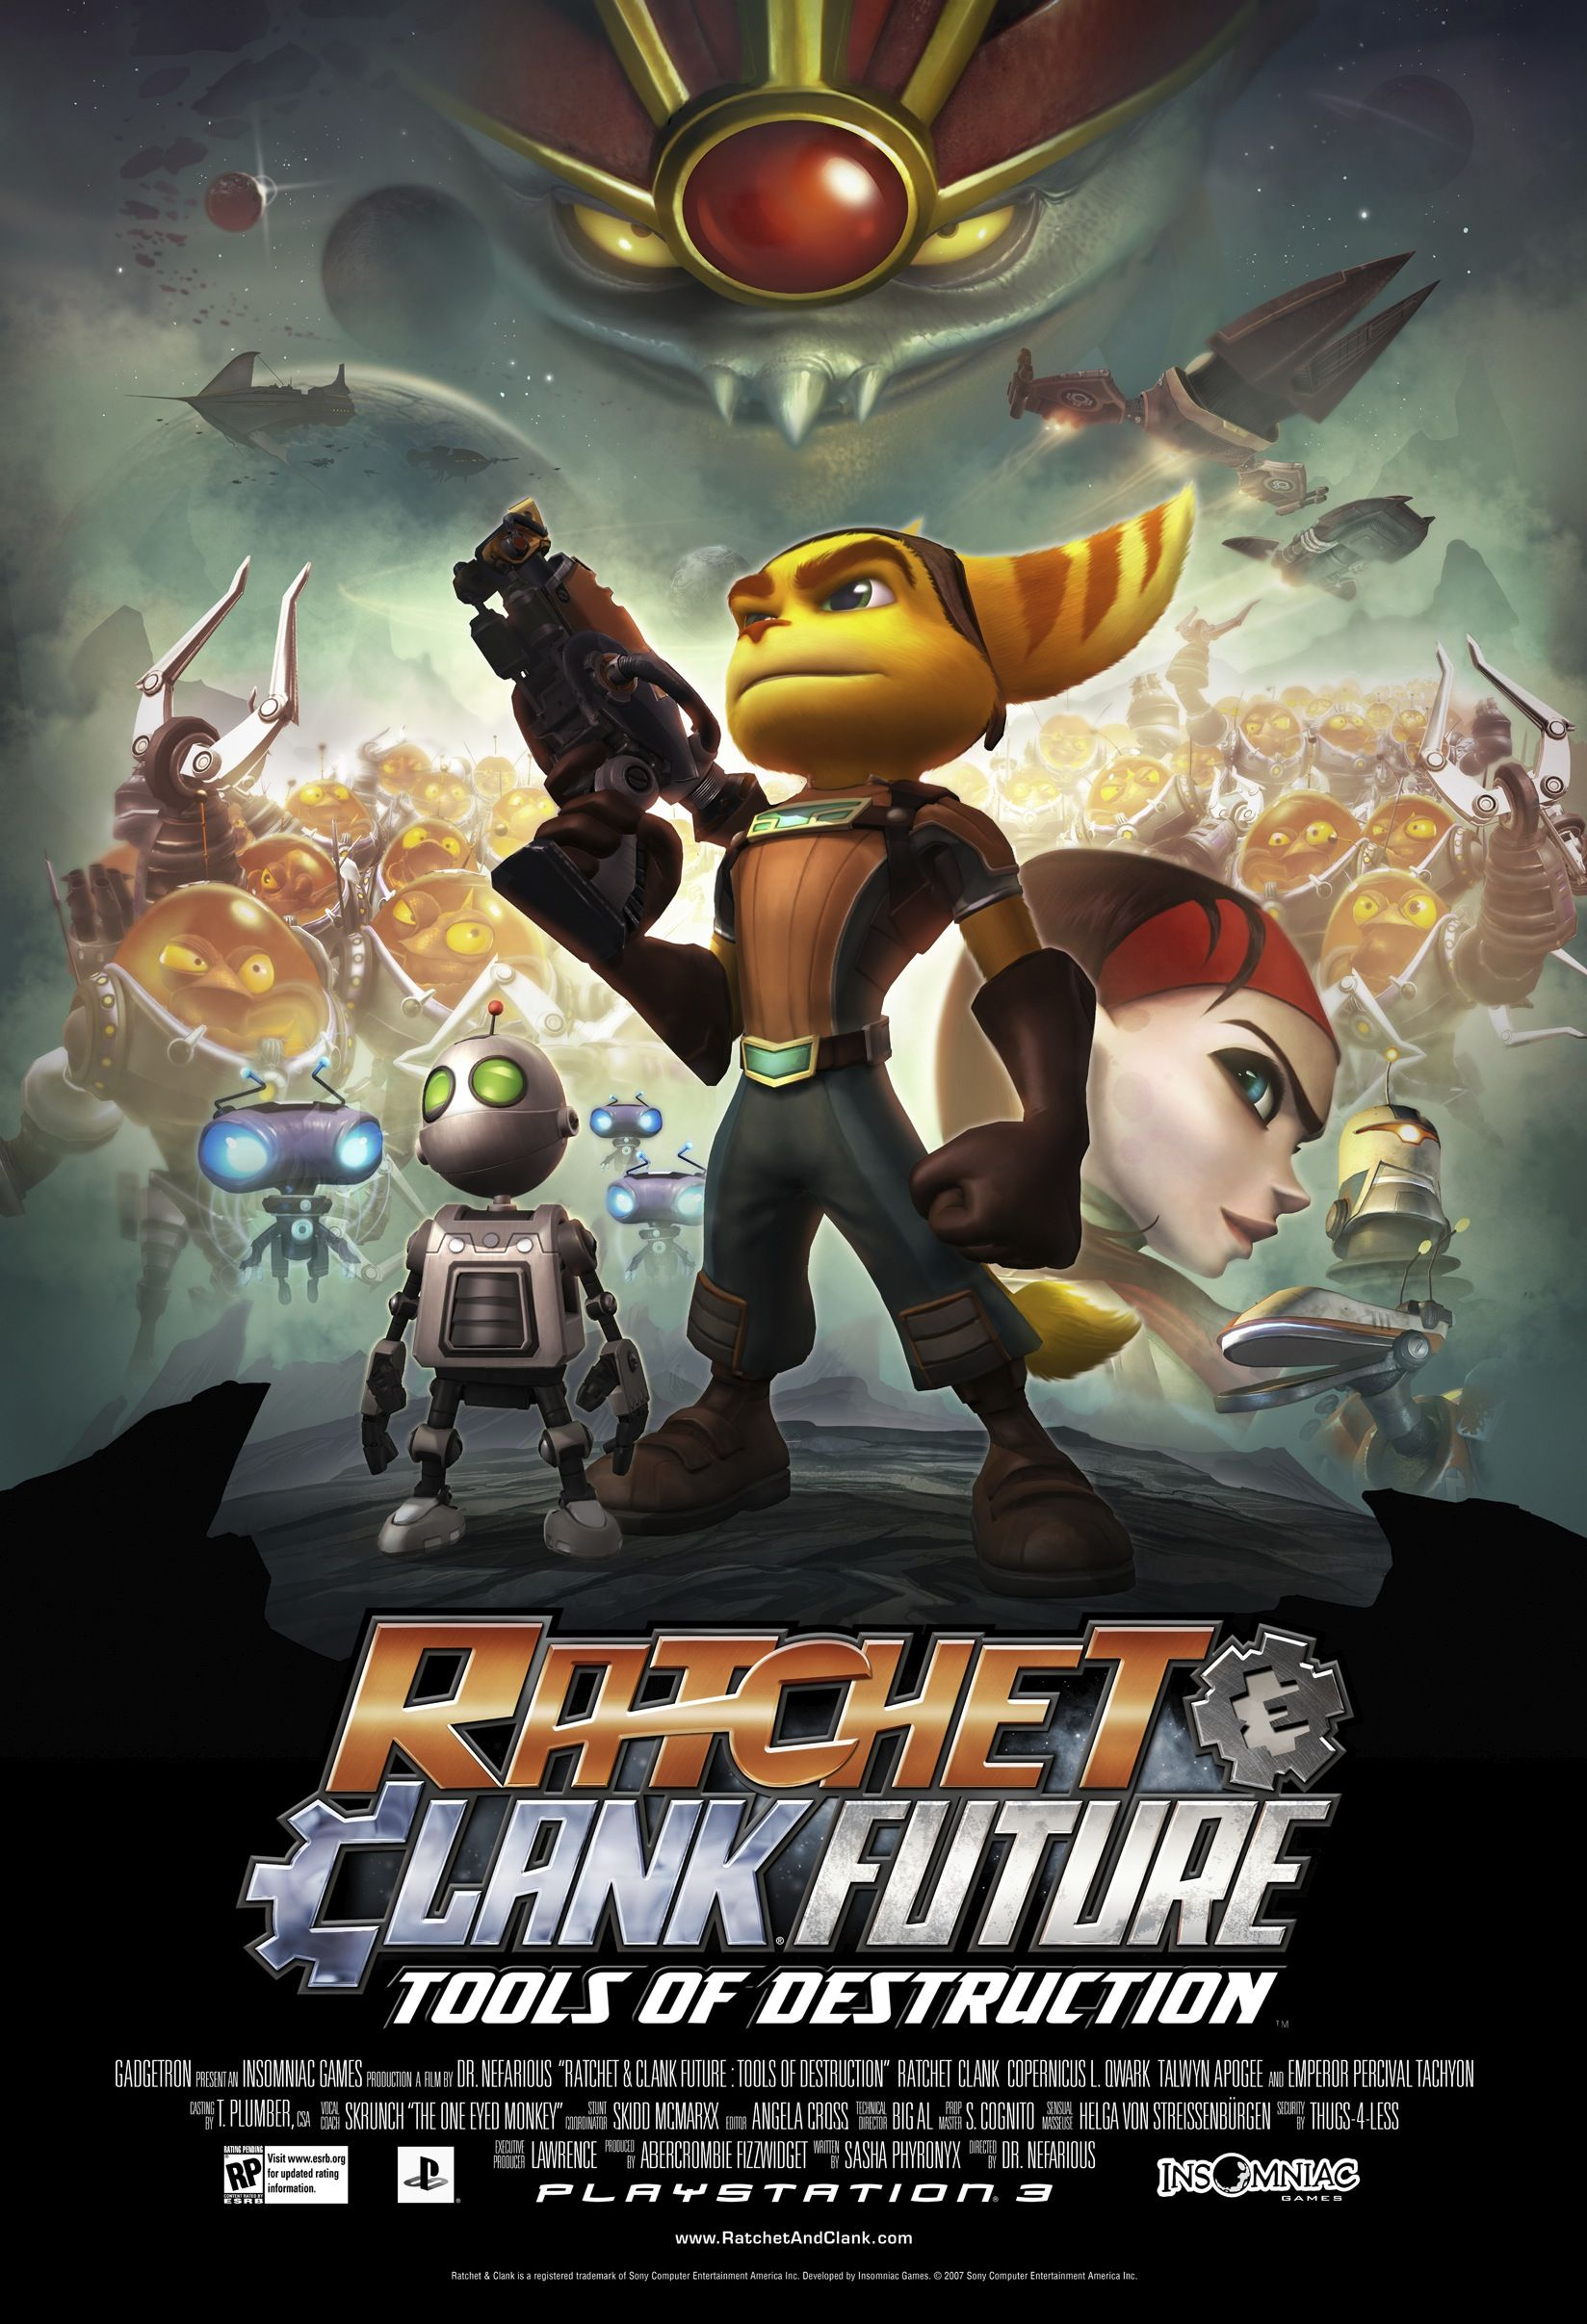 Ratchet And Clank Tools Of Destruction Poster Posters Art